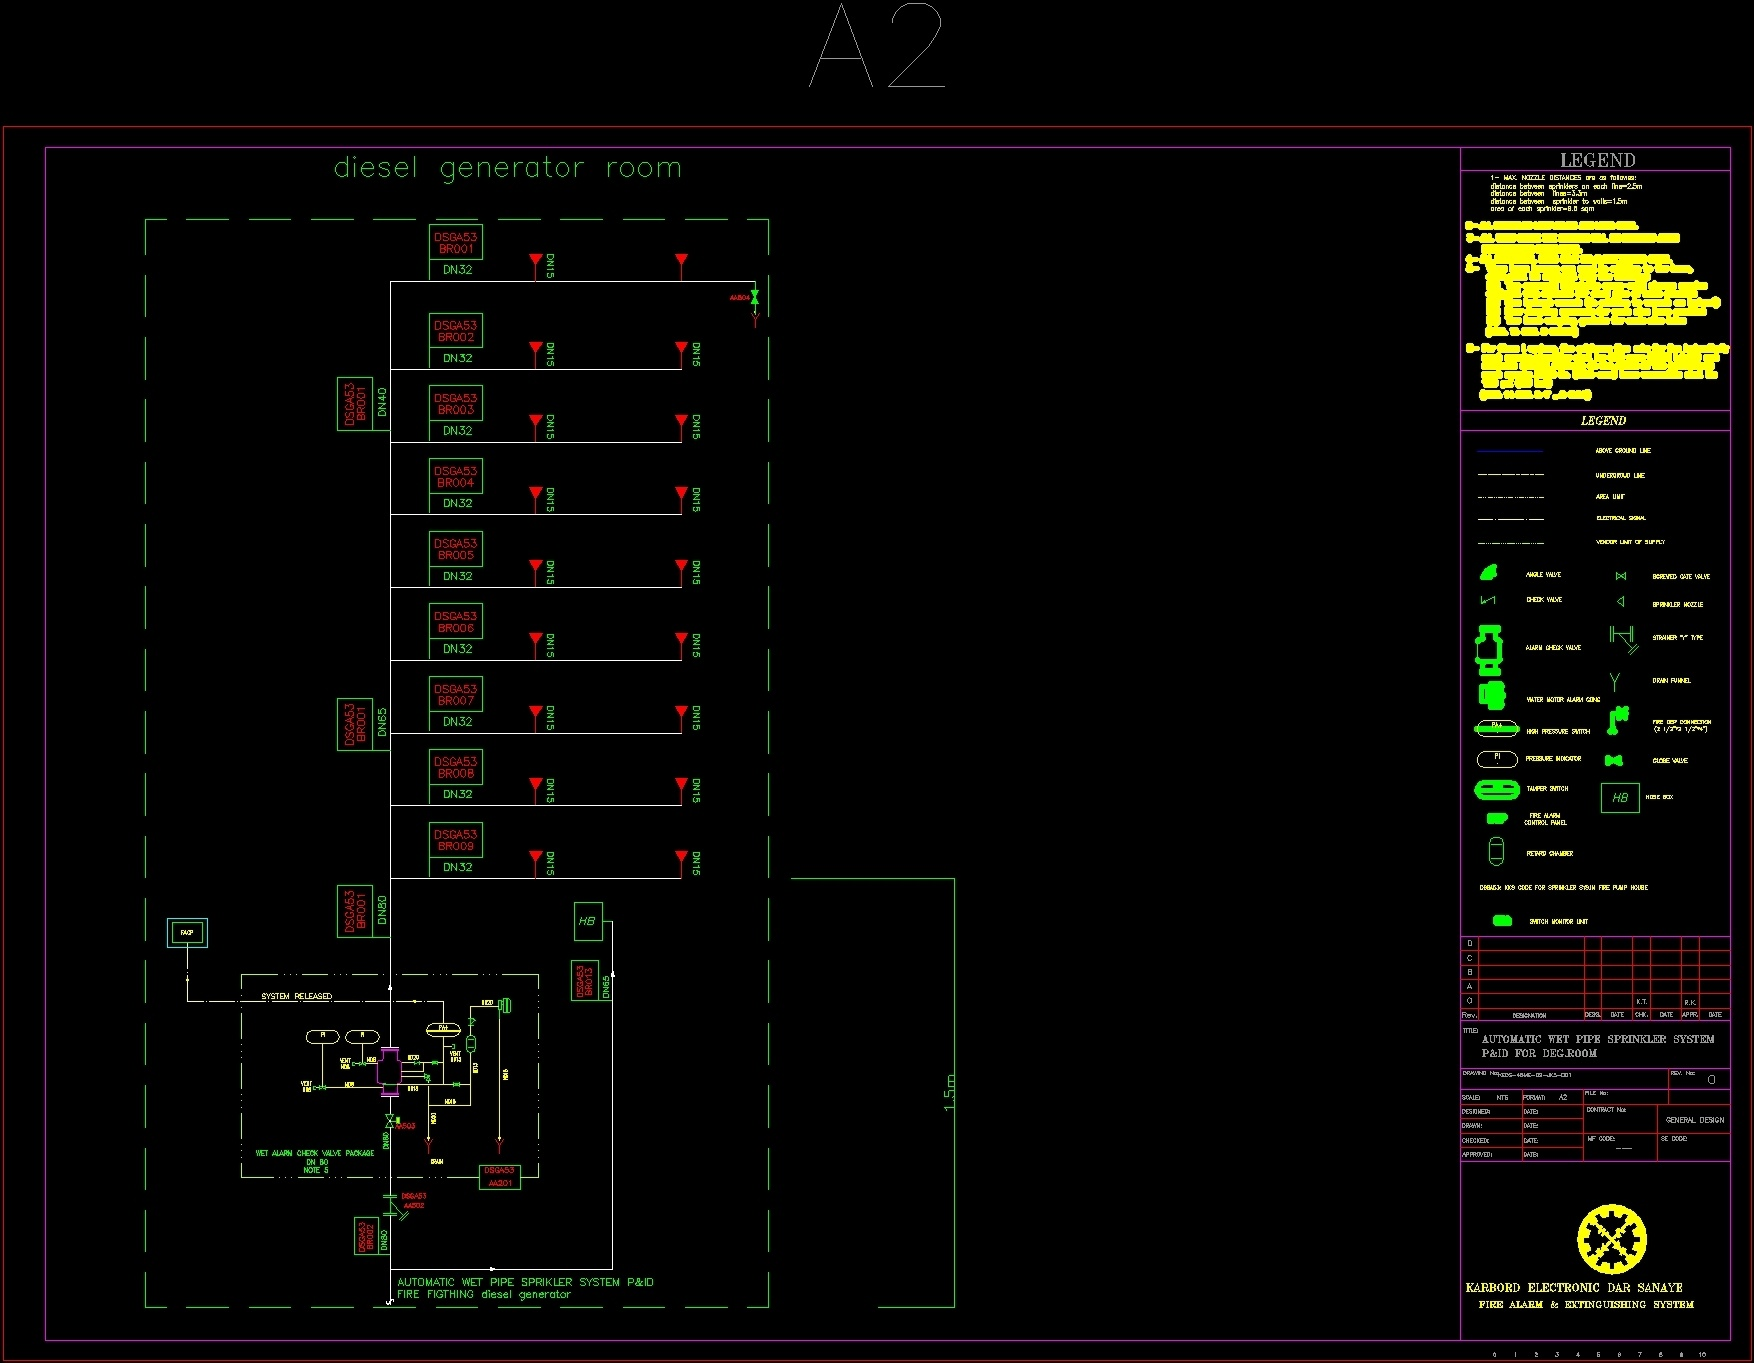 Fire Dwg Block For Autocad Designs Cad Standard Electrical Schematic Symbols Additionally Mep Further Additional Screenshots